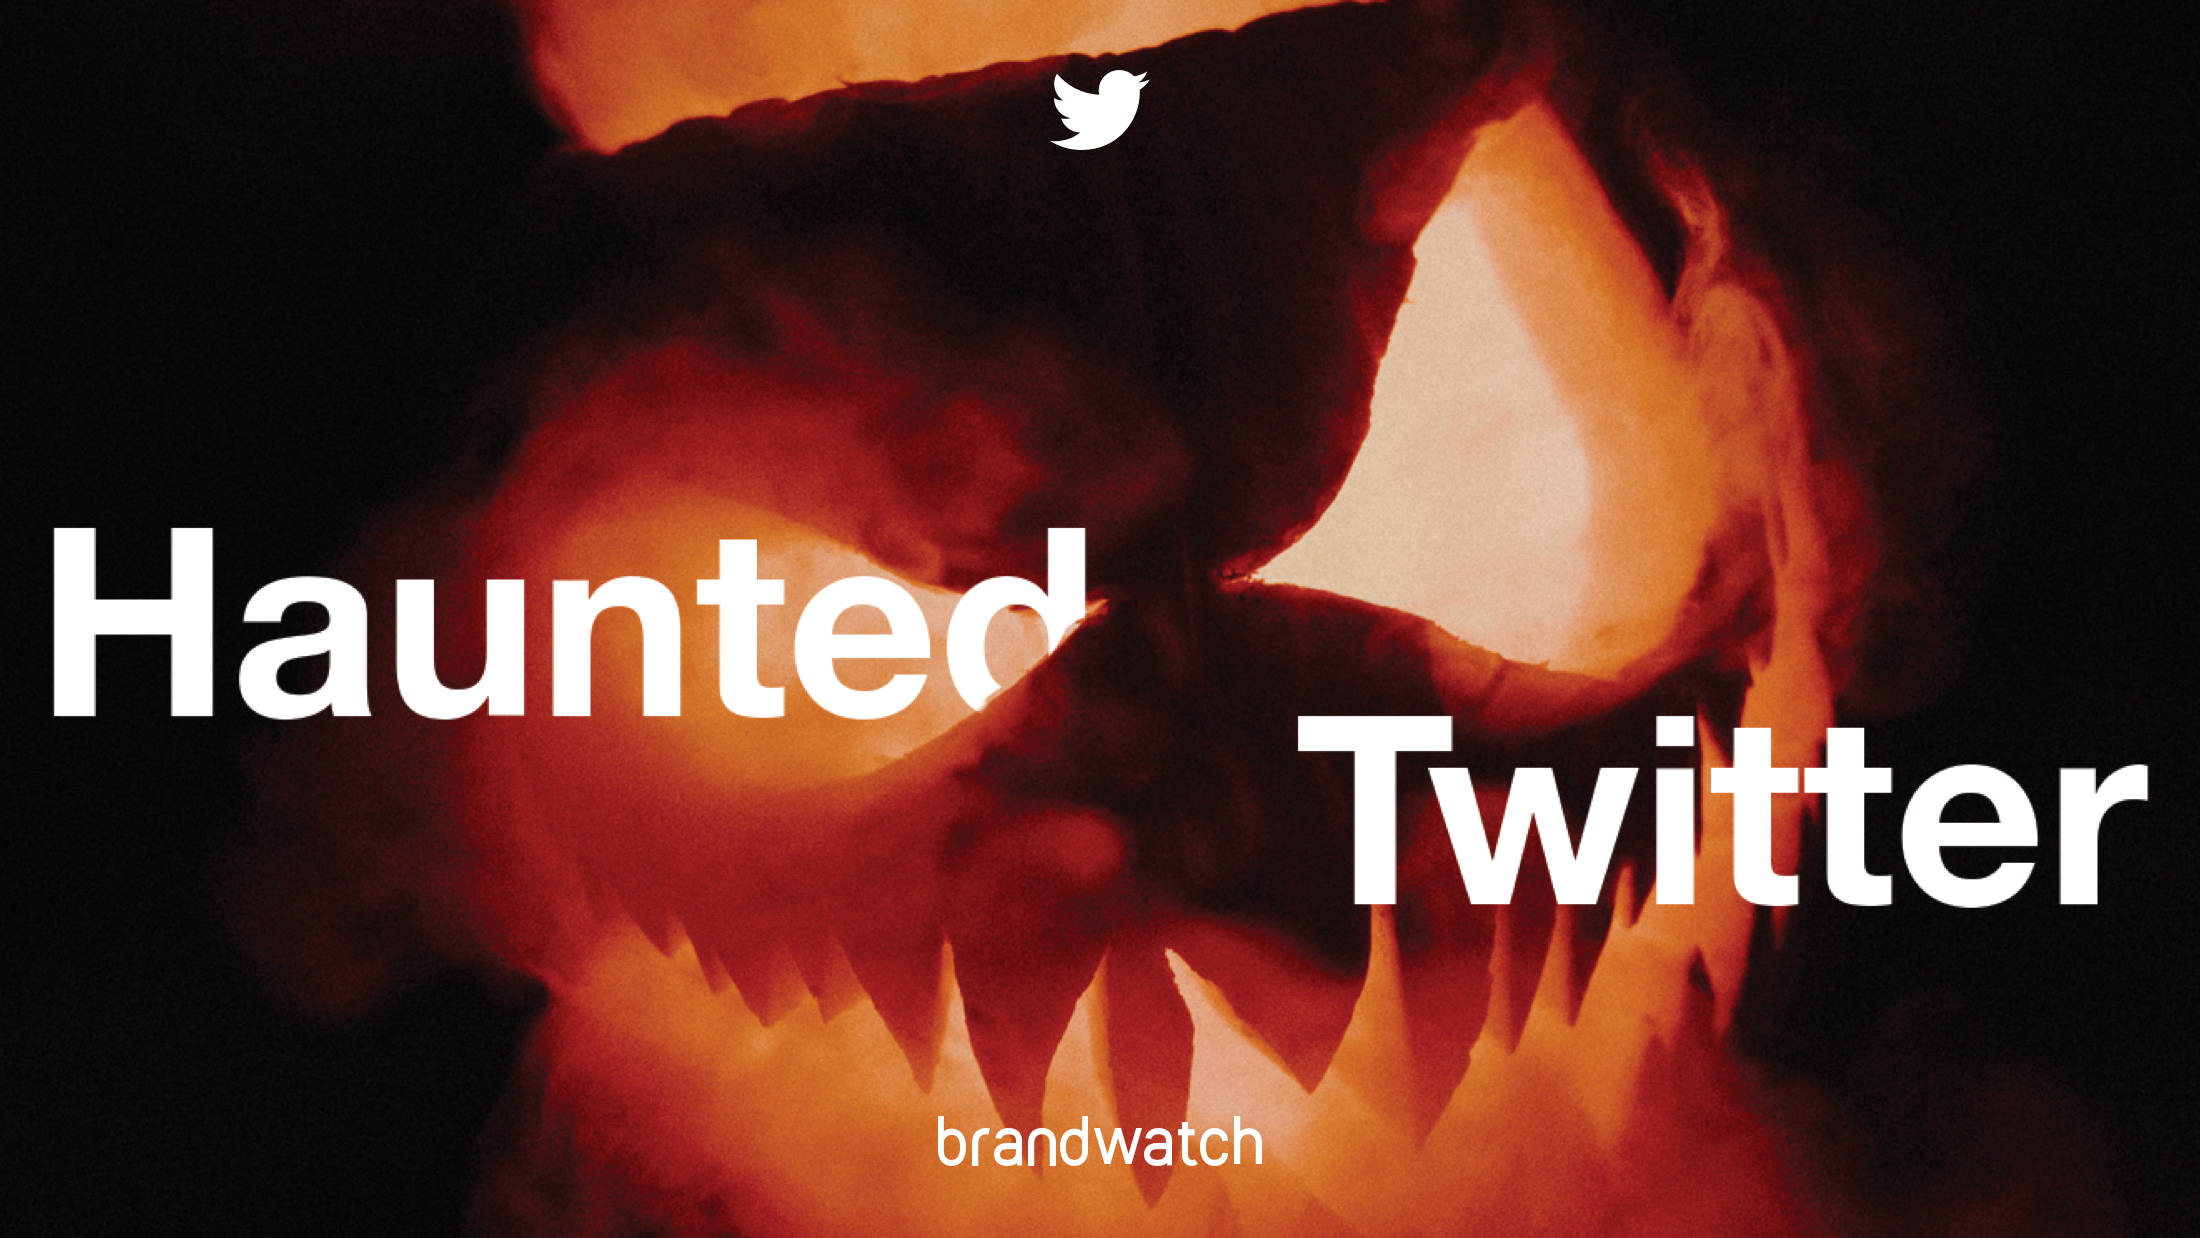 #HauntedTwitter: The Most Haunted States in America